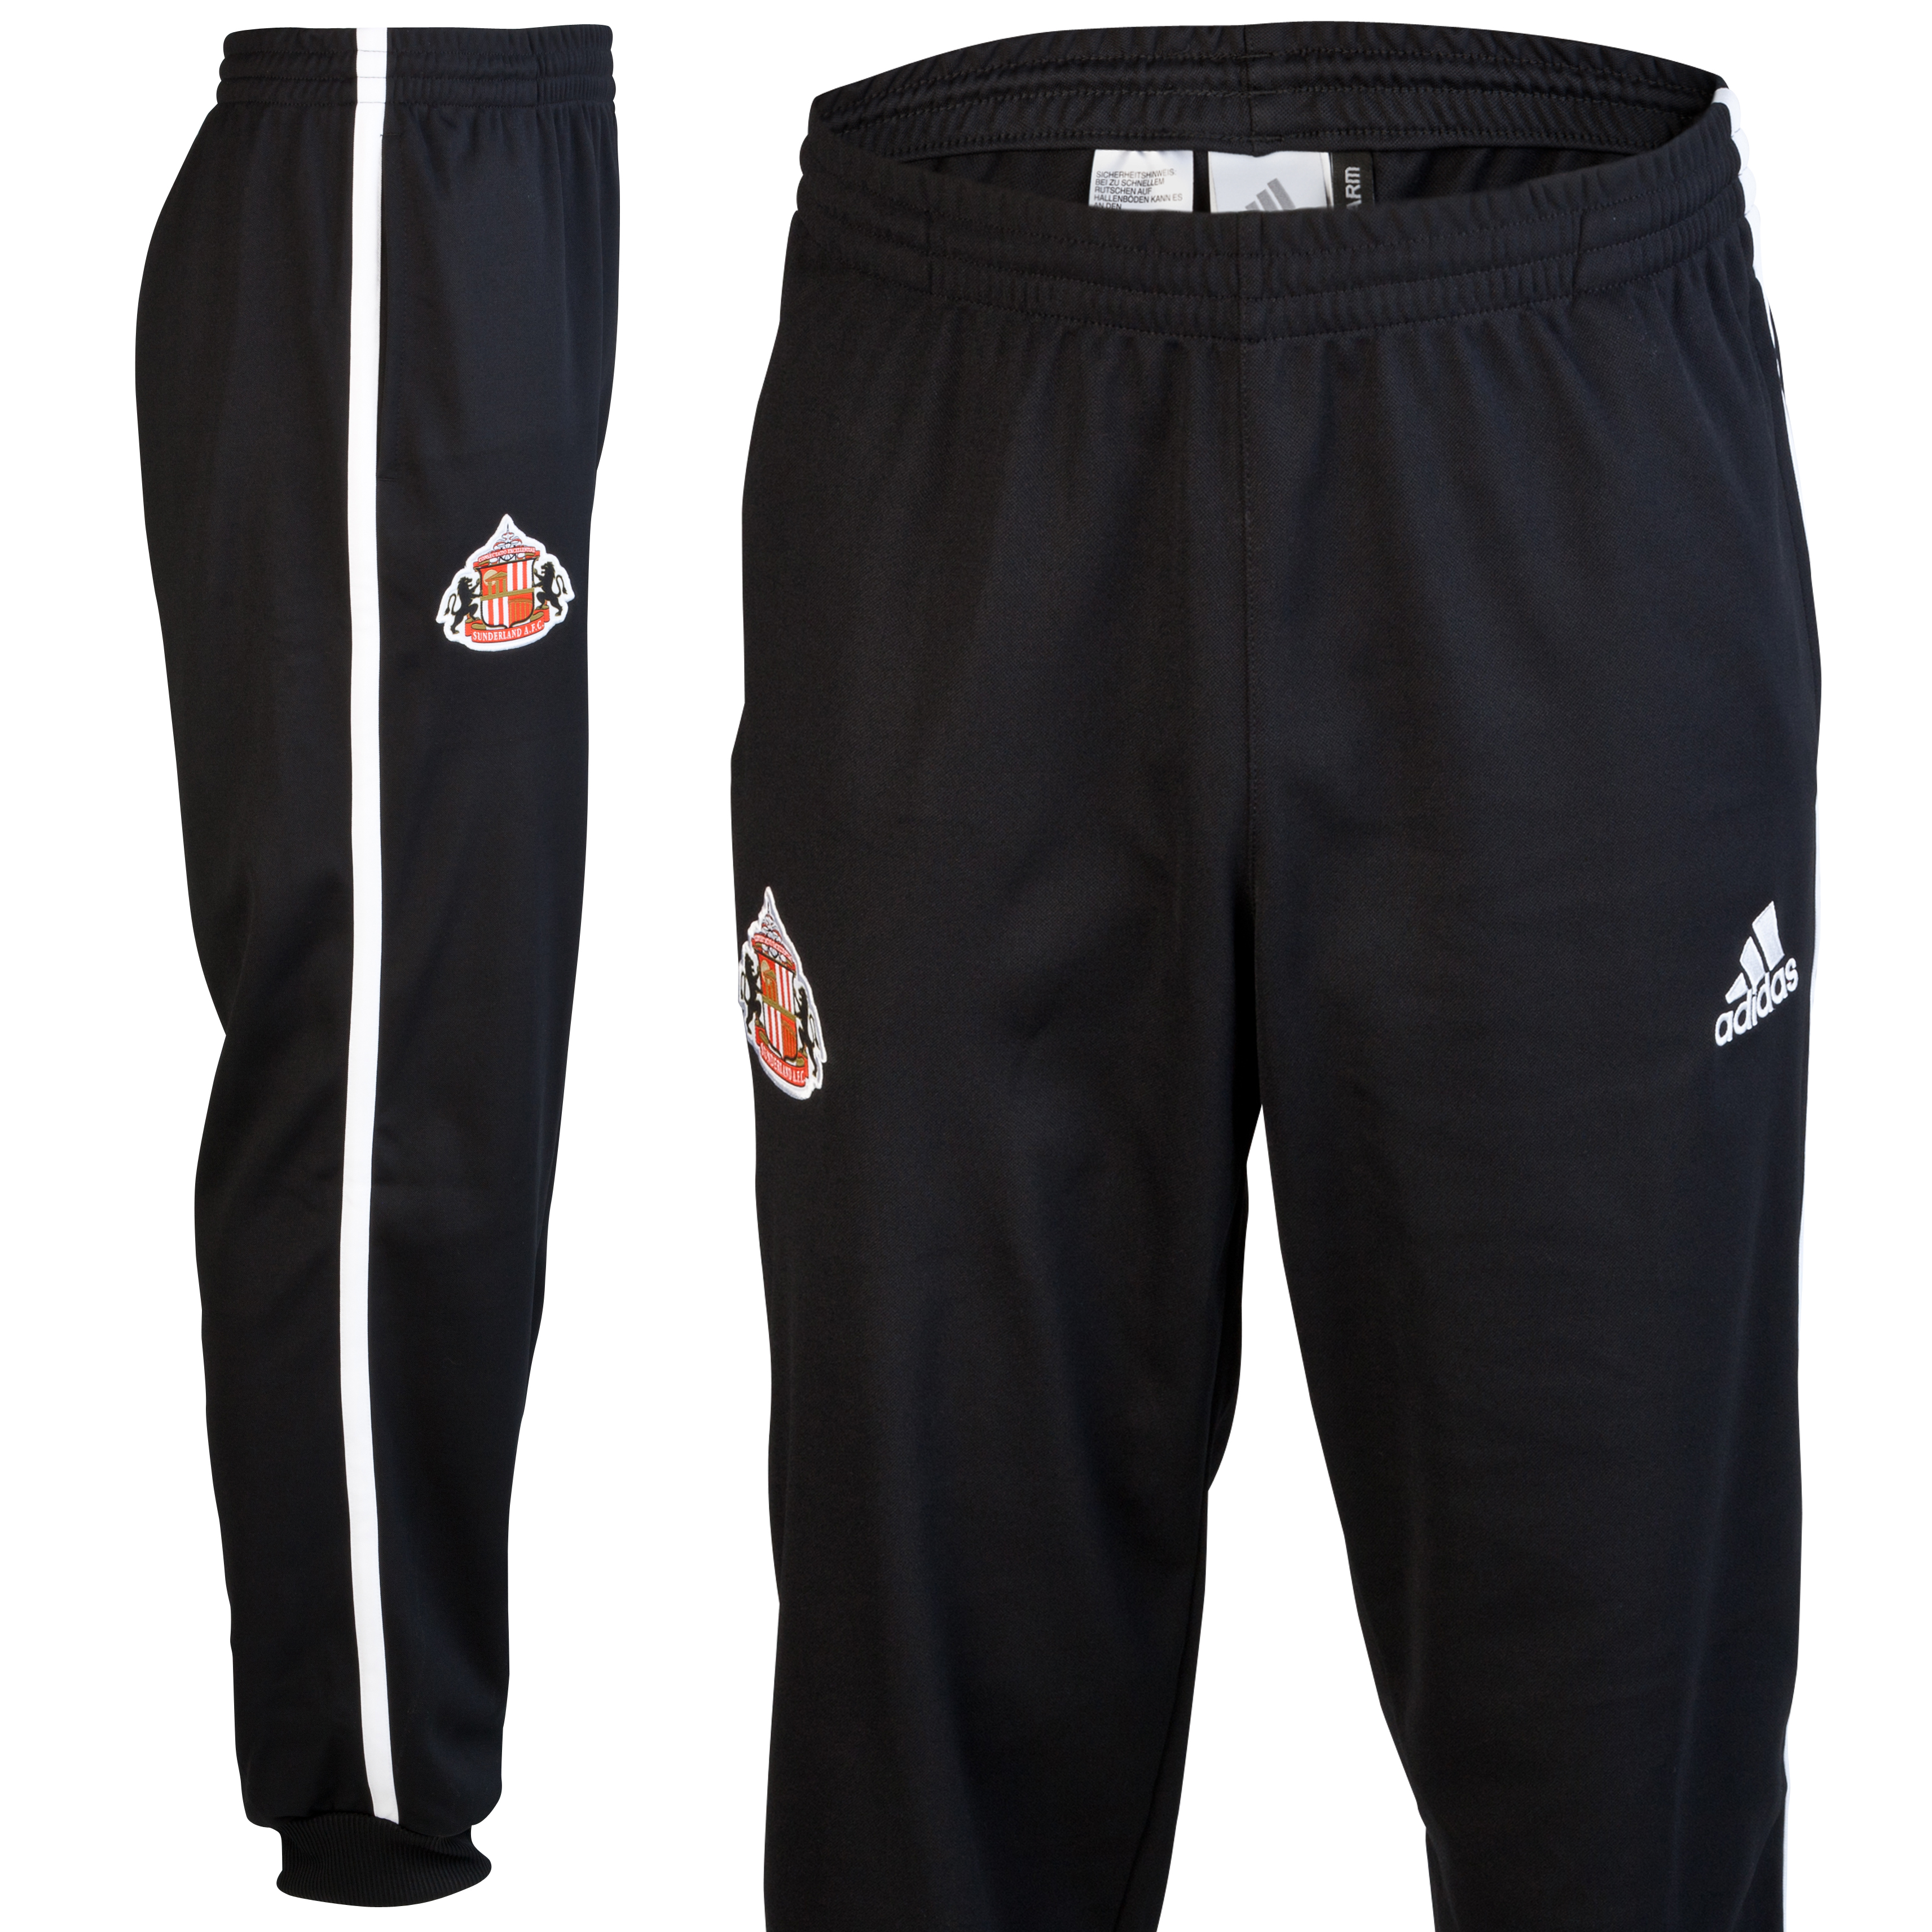 Sunderland Core Sweat Pant - Black/White